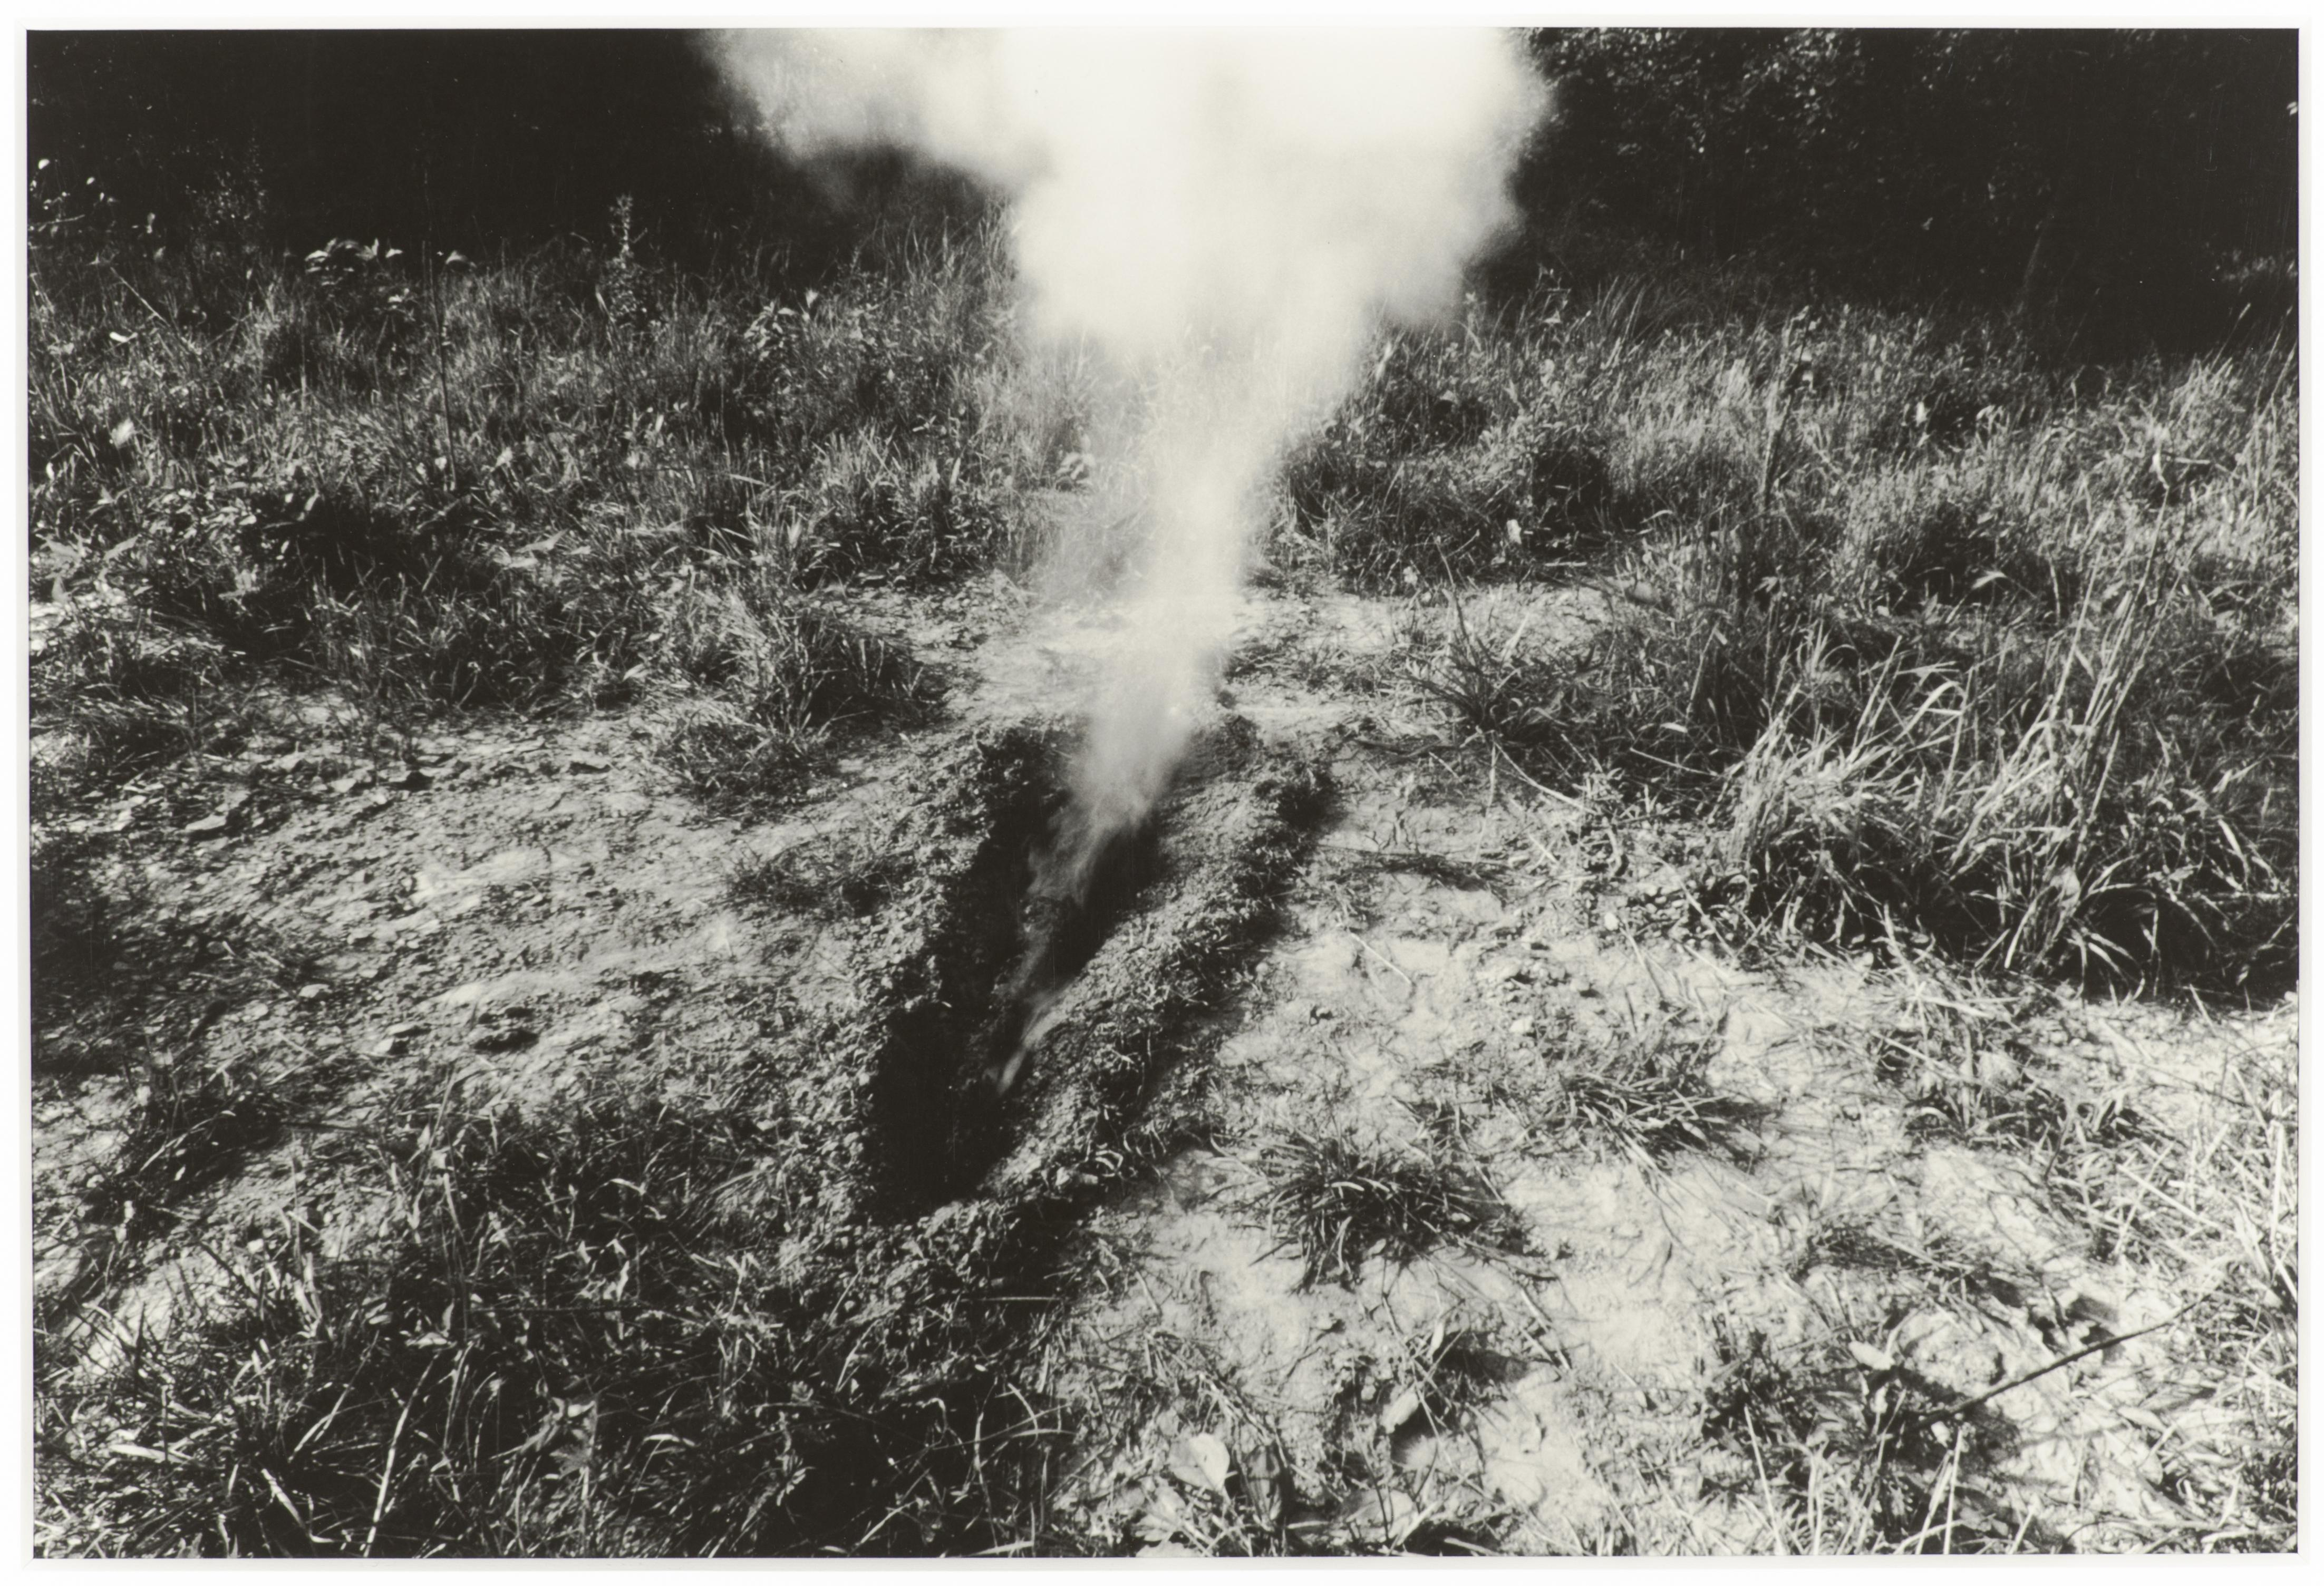 A black-and-white photo captures smoke billowing from a body-sized trench in a clearing with weeds and trees in the horizon.